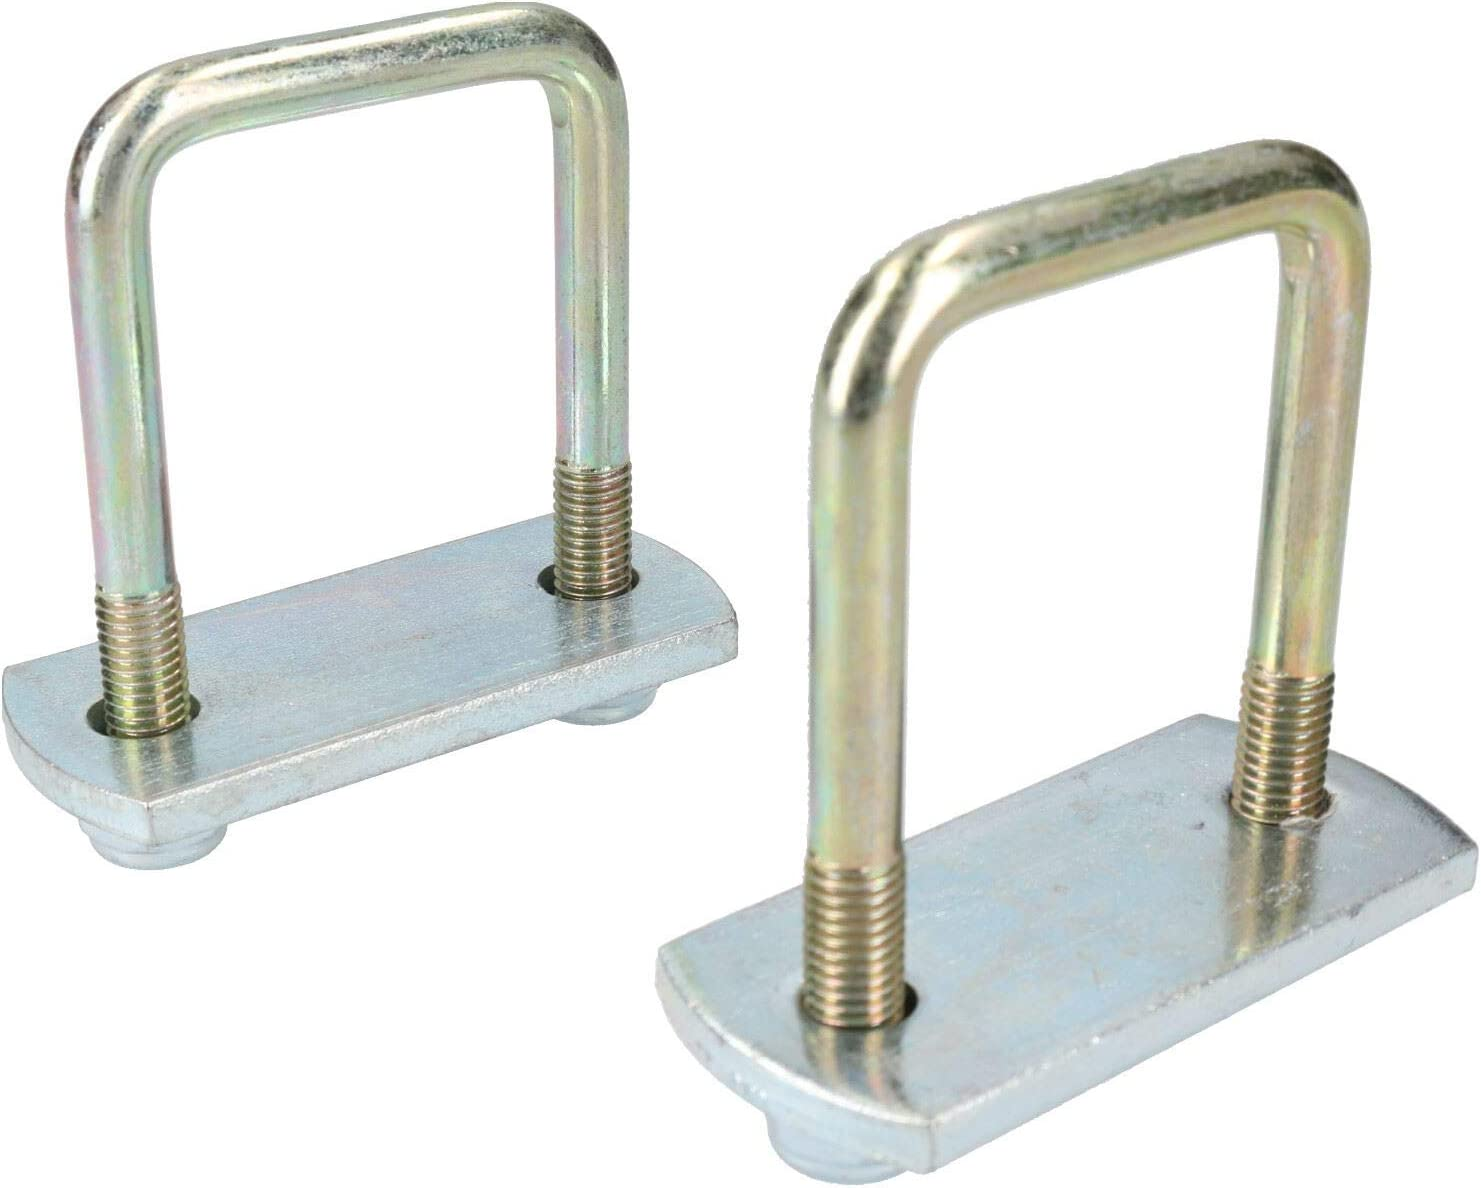 4 Pack M10 50mm x 130mm U-Bolt N-Bolt with Plates /& Nuts HIGH TENSILE